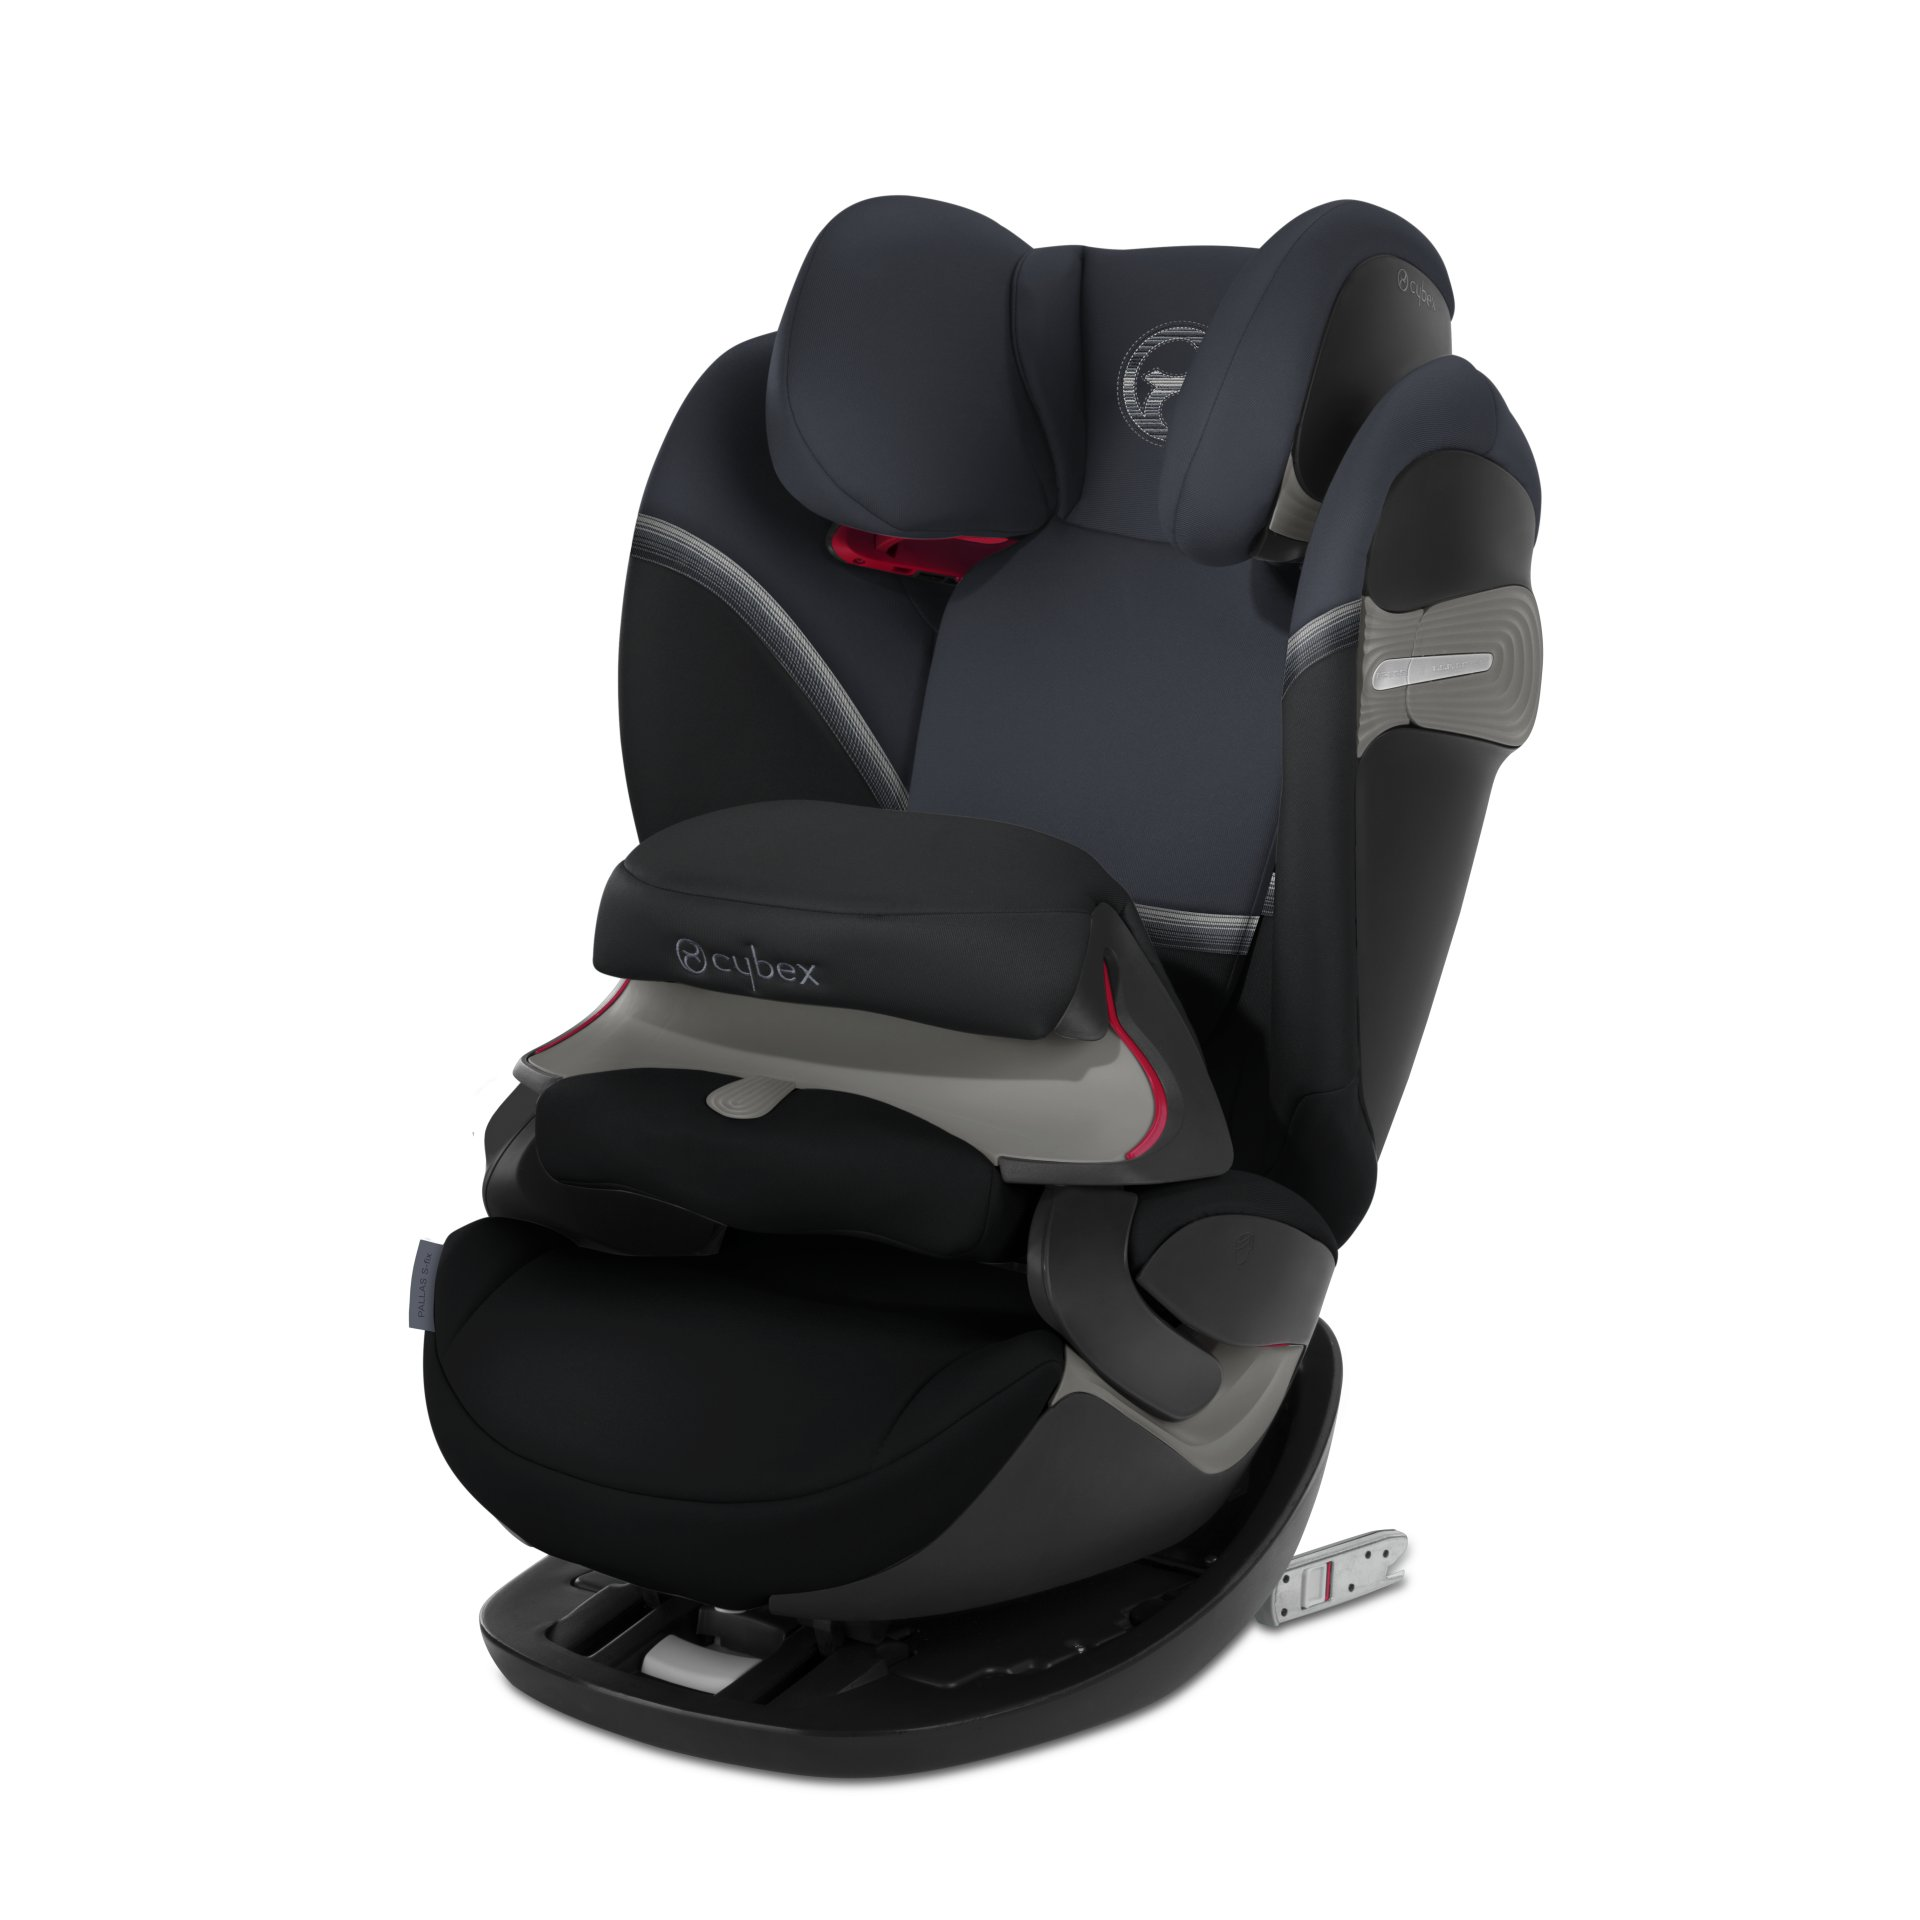 Kids Group 1-2-3 Car Seat ISOFIX Baby Child Booster Chair Travel Protector Black